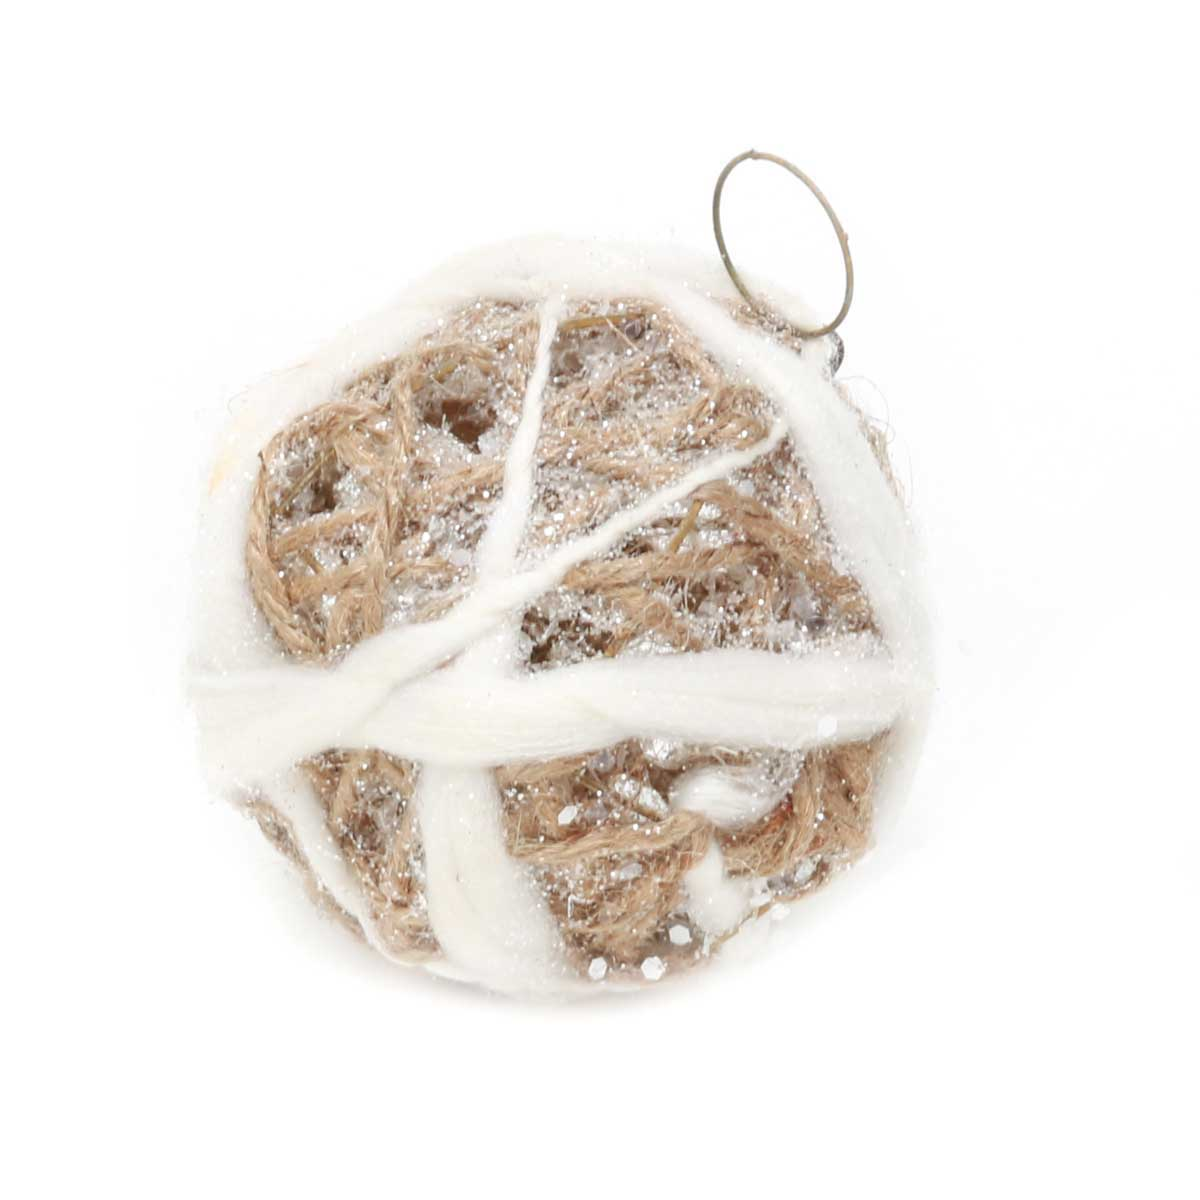 FARMHOUSE CHIC TWIG BALL ORNAMENT 4""